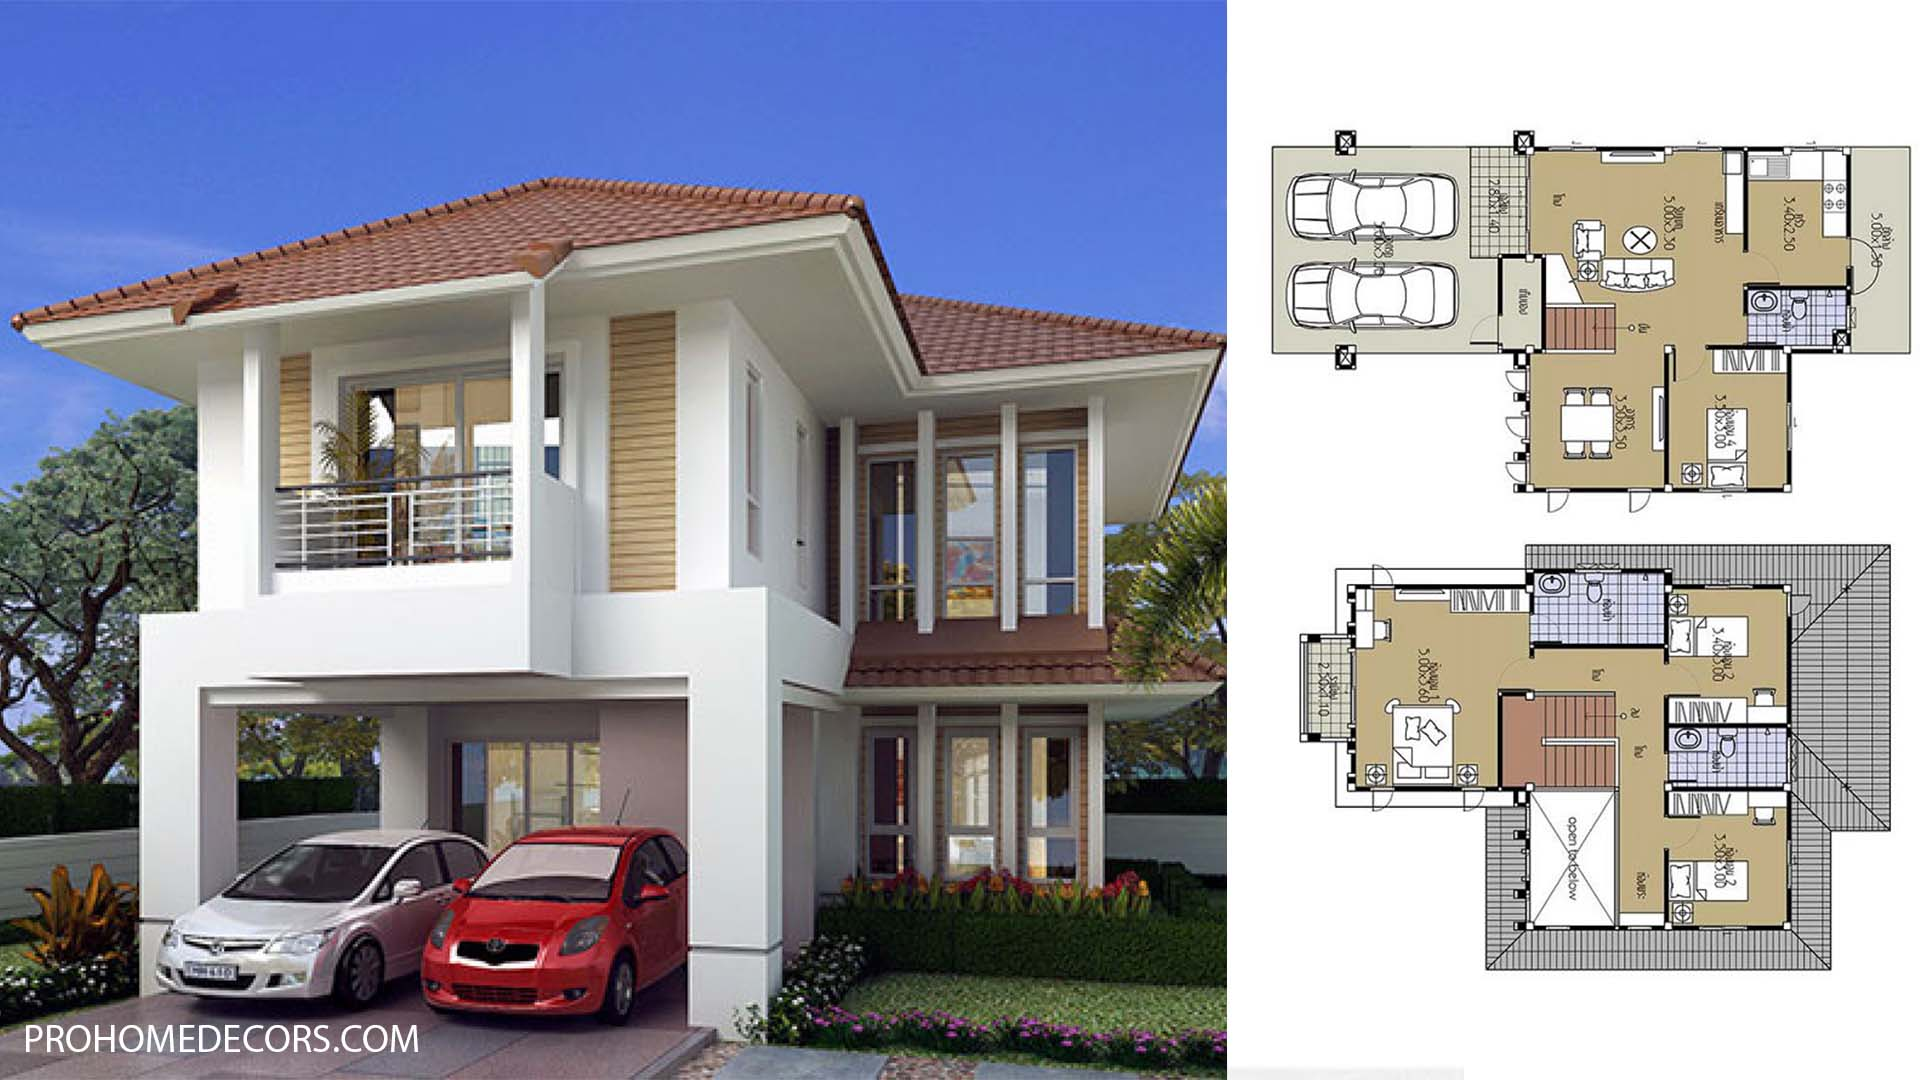 House Plans 8.5×13.5 with 4 Bedrooms